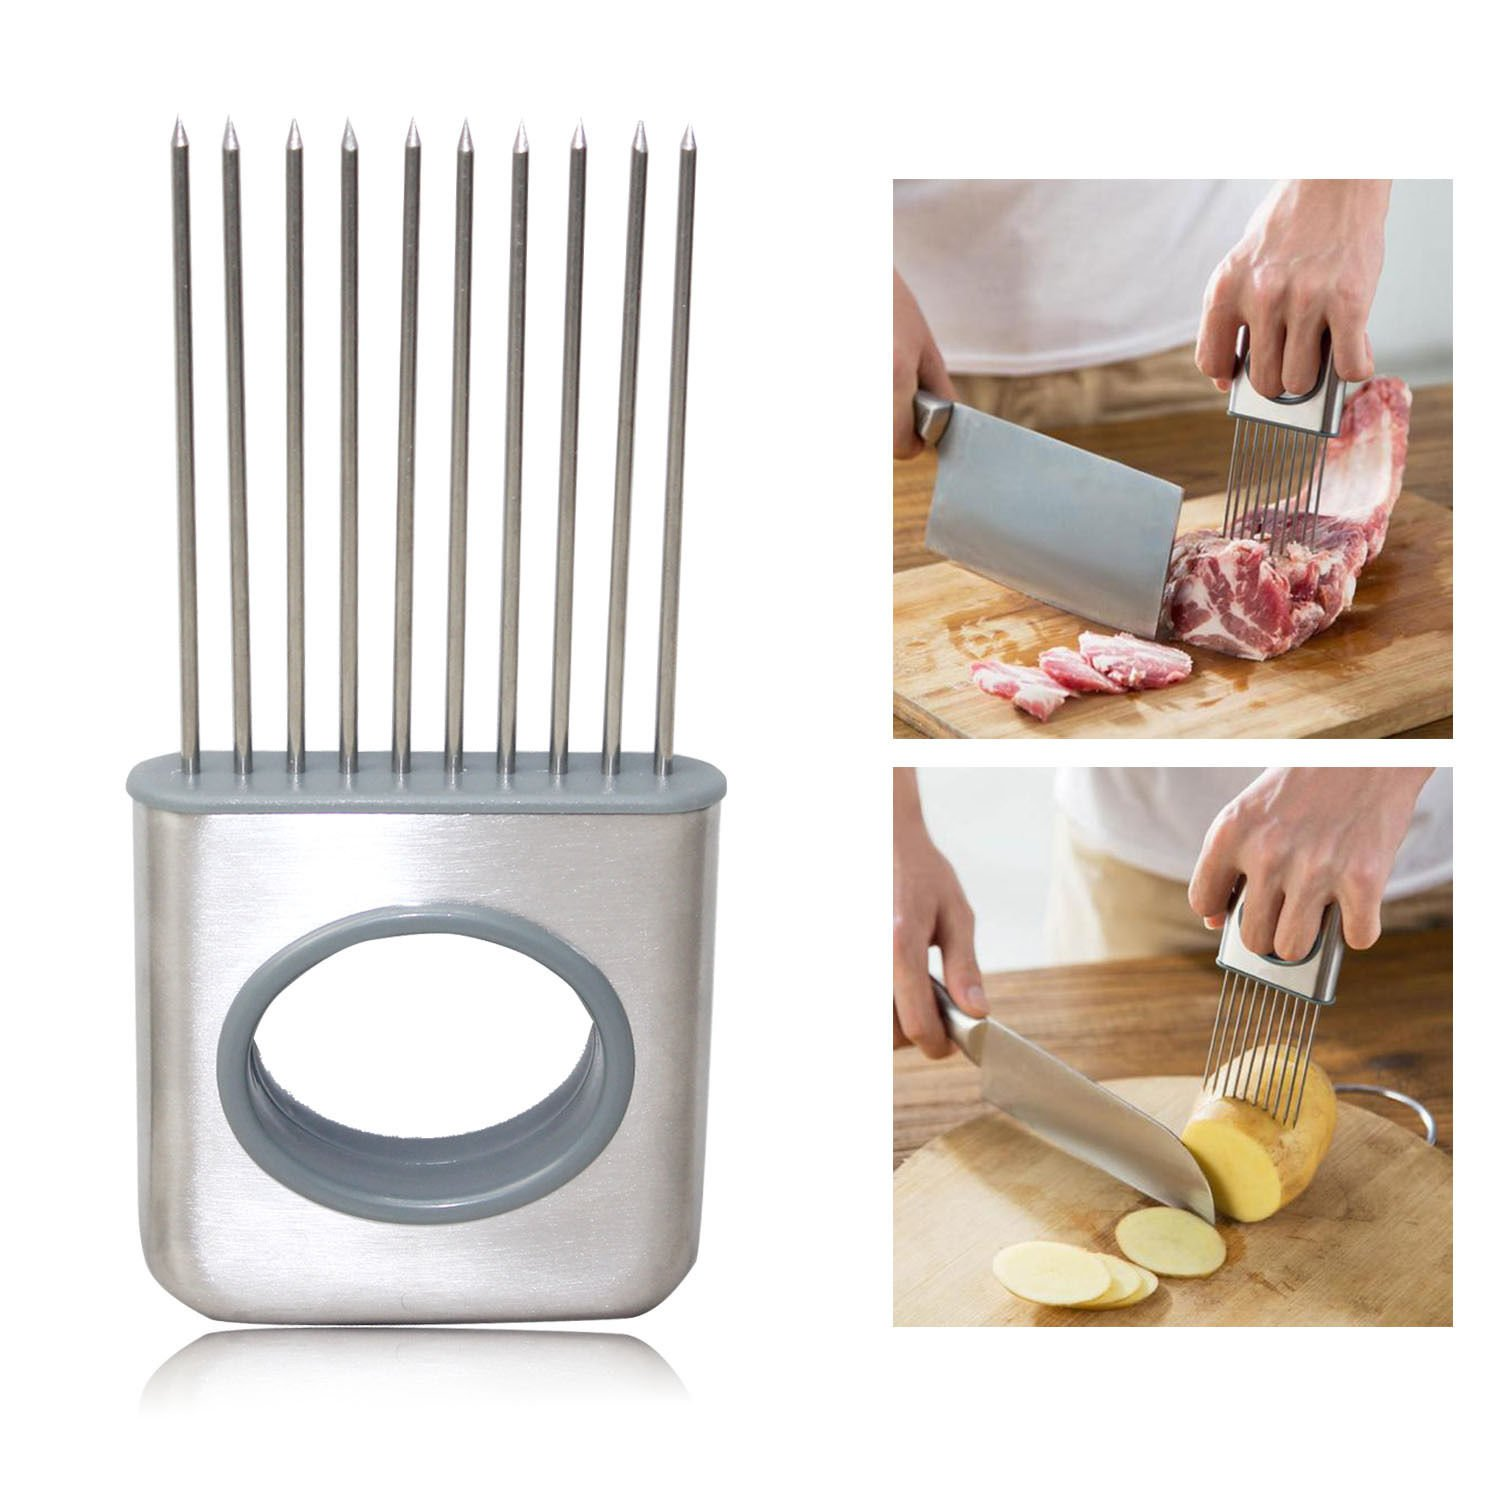 MYCS Onion Holder Slicer Tomato Vegetable Cutter Stainless Steel Kitchen Gadget Tools MYCS GLOBAL